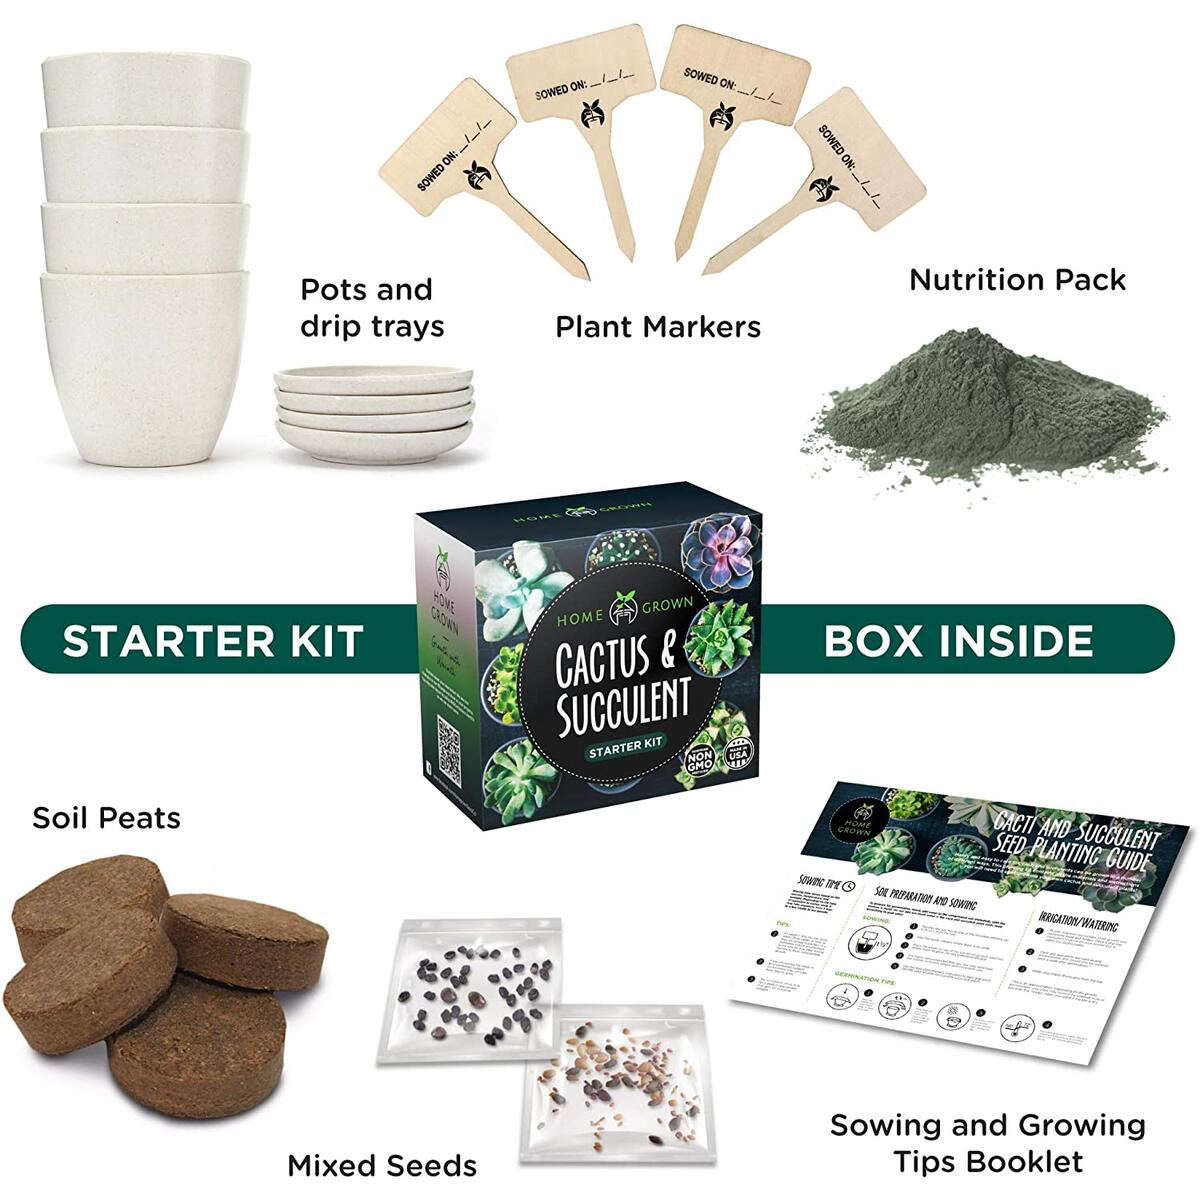 Succulent & Cactus Seed Kit for Planting – [Enthusiasts Favorites] - Cactus & Succulent Starter Kit – Premium Pack, 4 Planters, Drip Trays, Markers, Seeds Mix, Soil - DIY Gift Kits for Adults and Kids